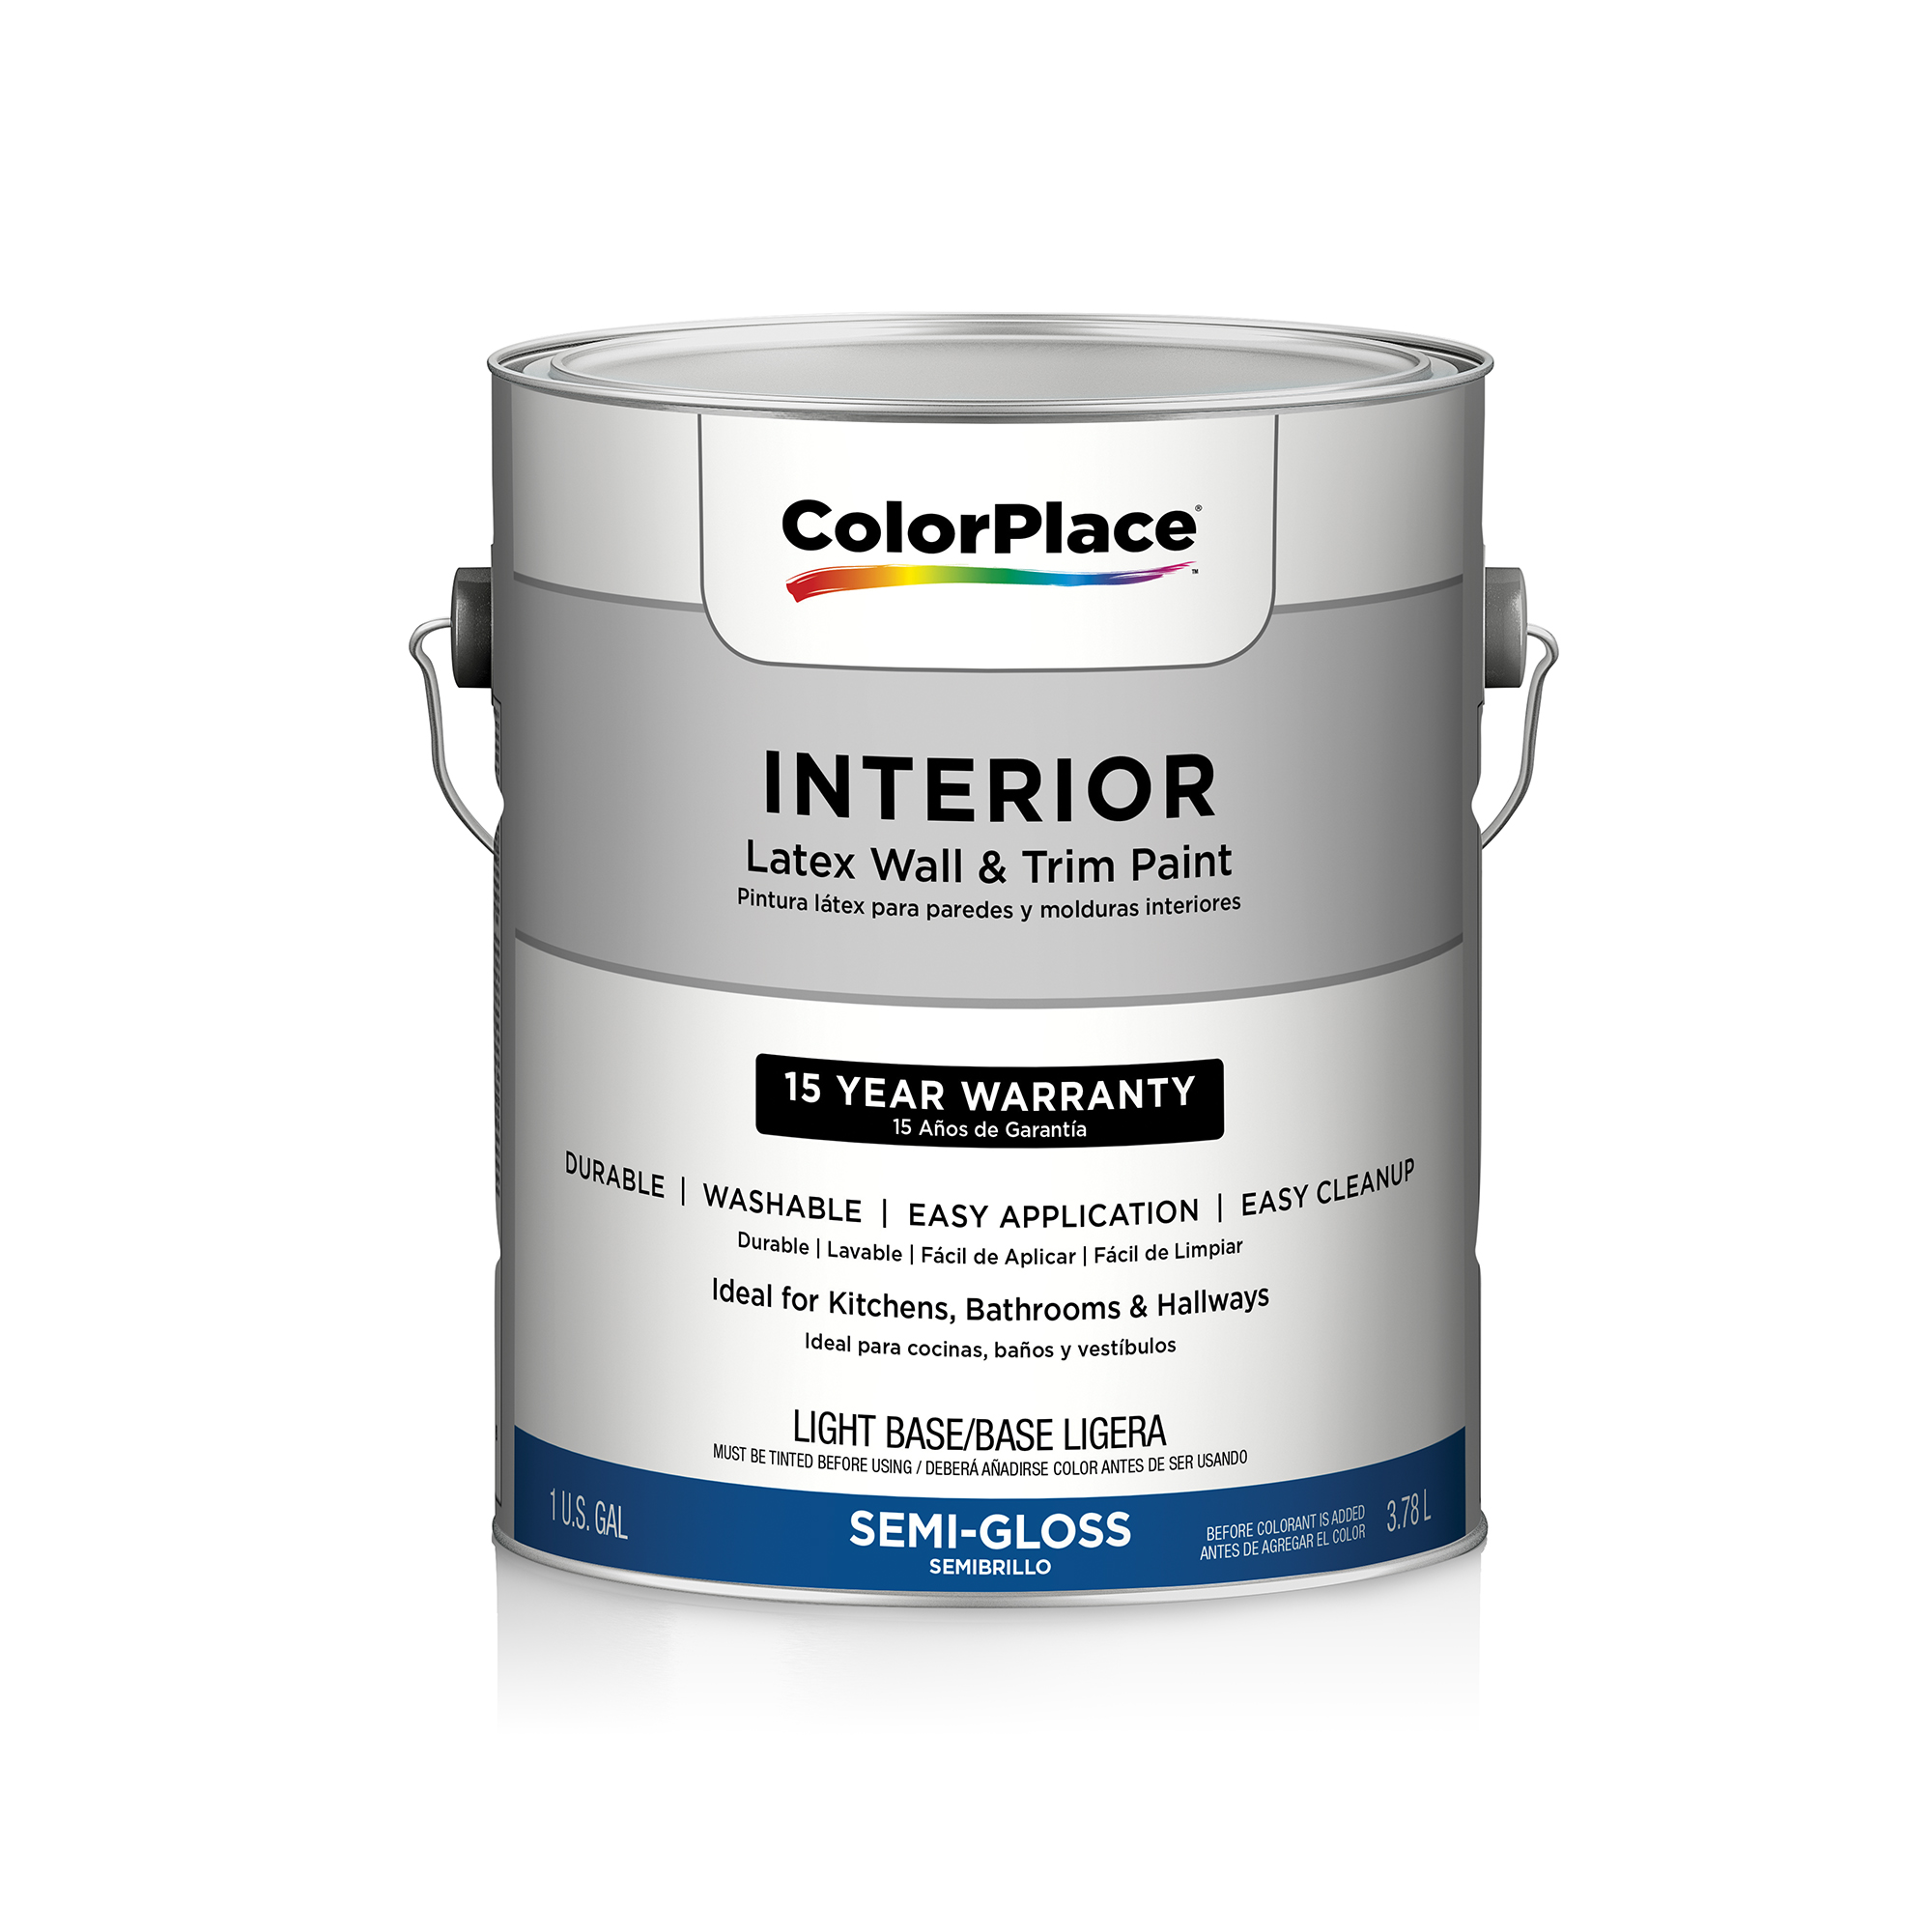 ColorPlace Interior Semi-Gloss Light Base Paint, 1 Gal